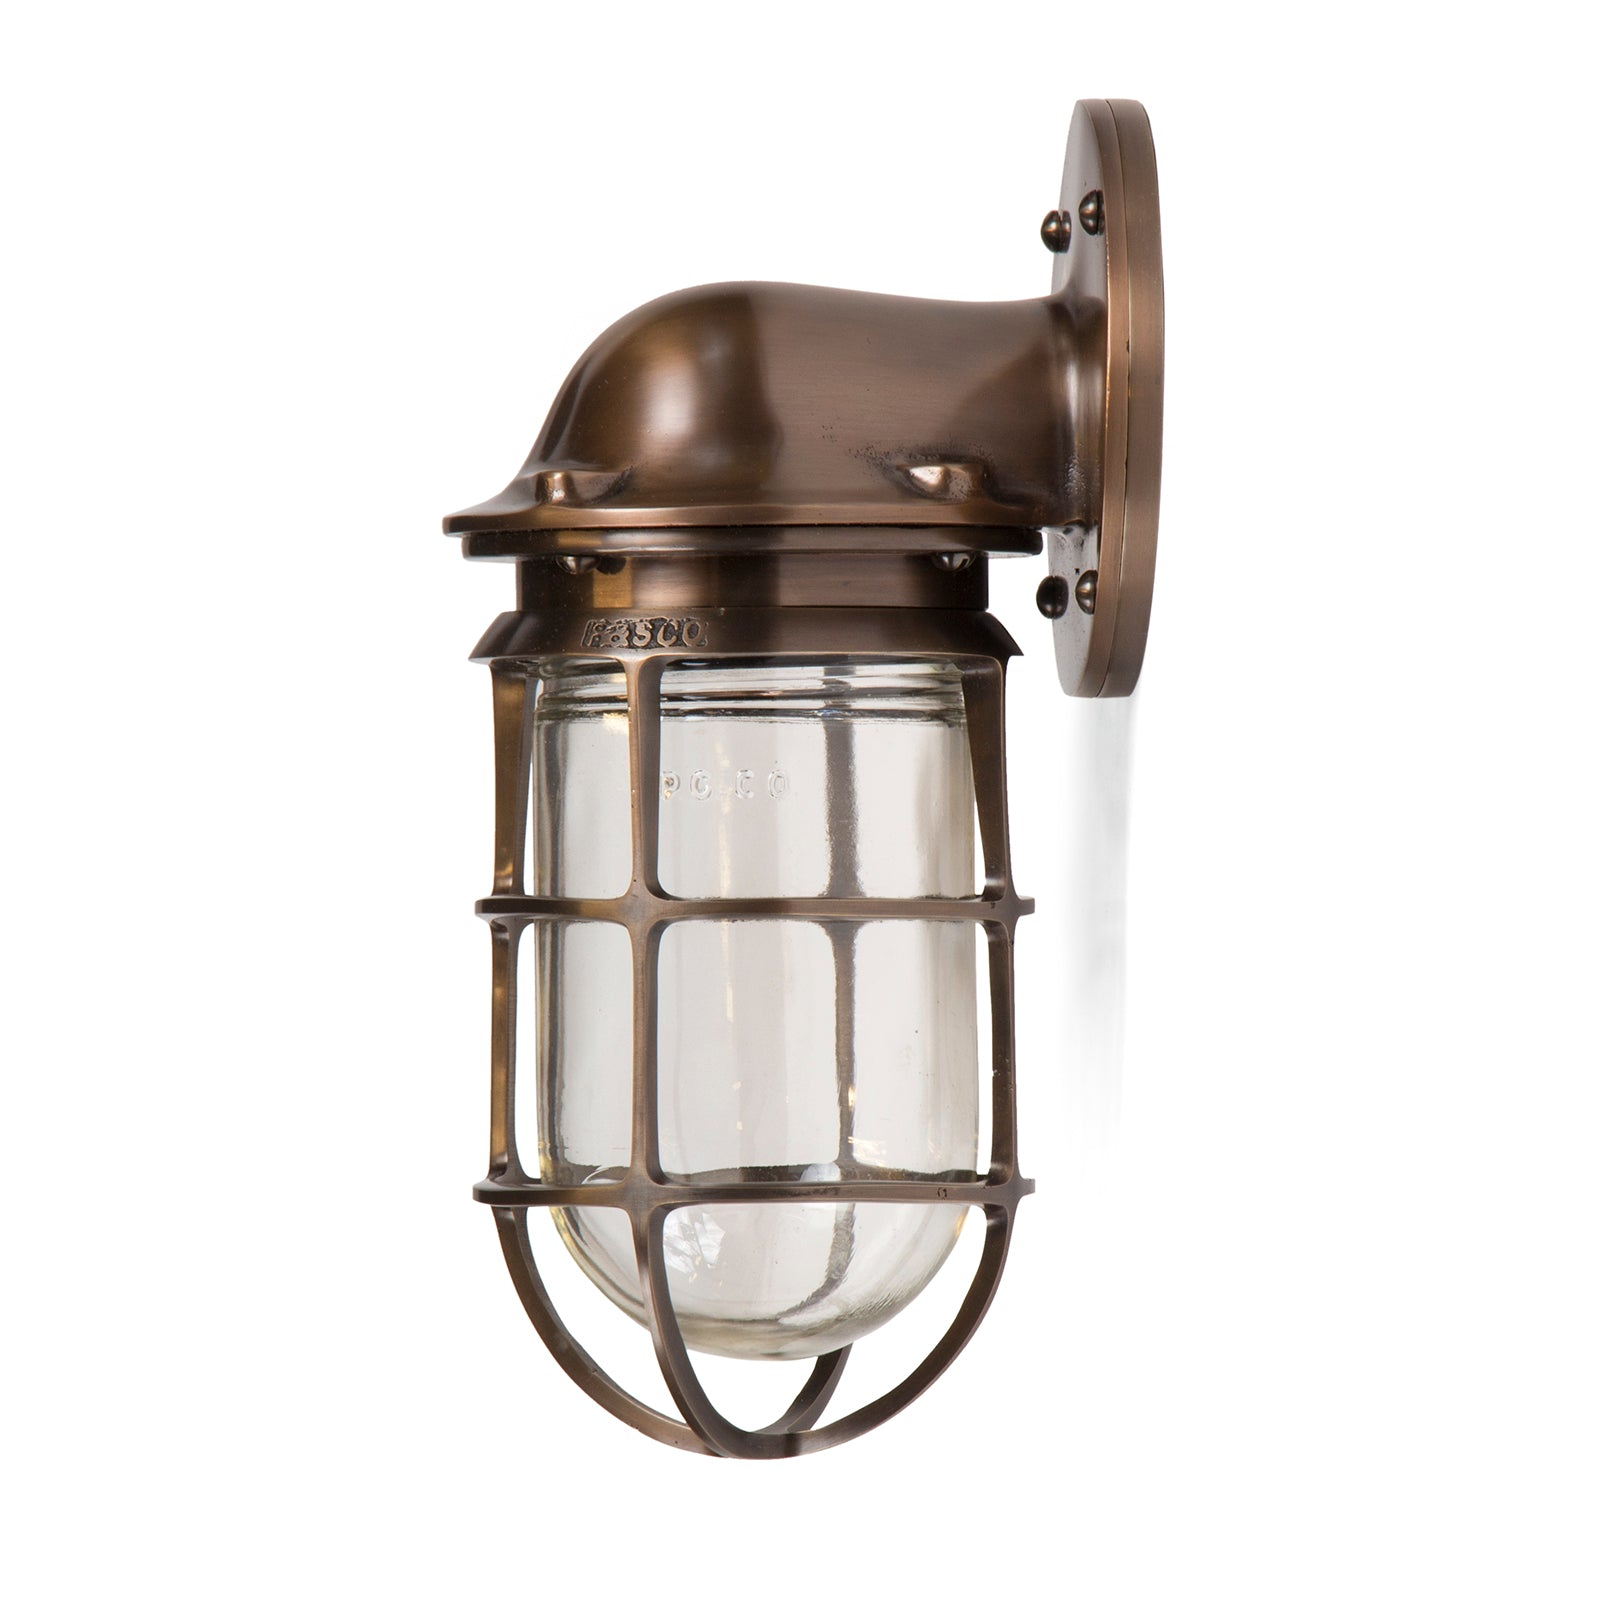 Industrial Caged Light - Lighting - Russell & Stoll Co. WYETH